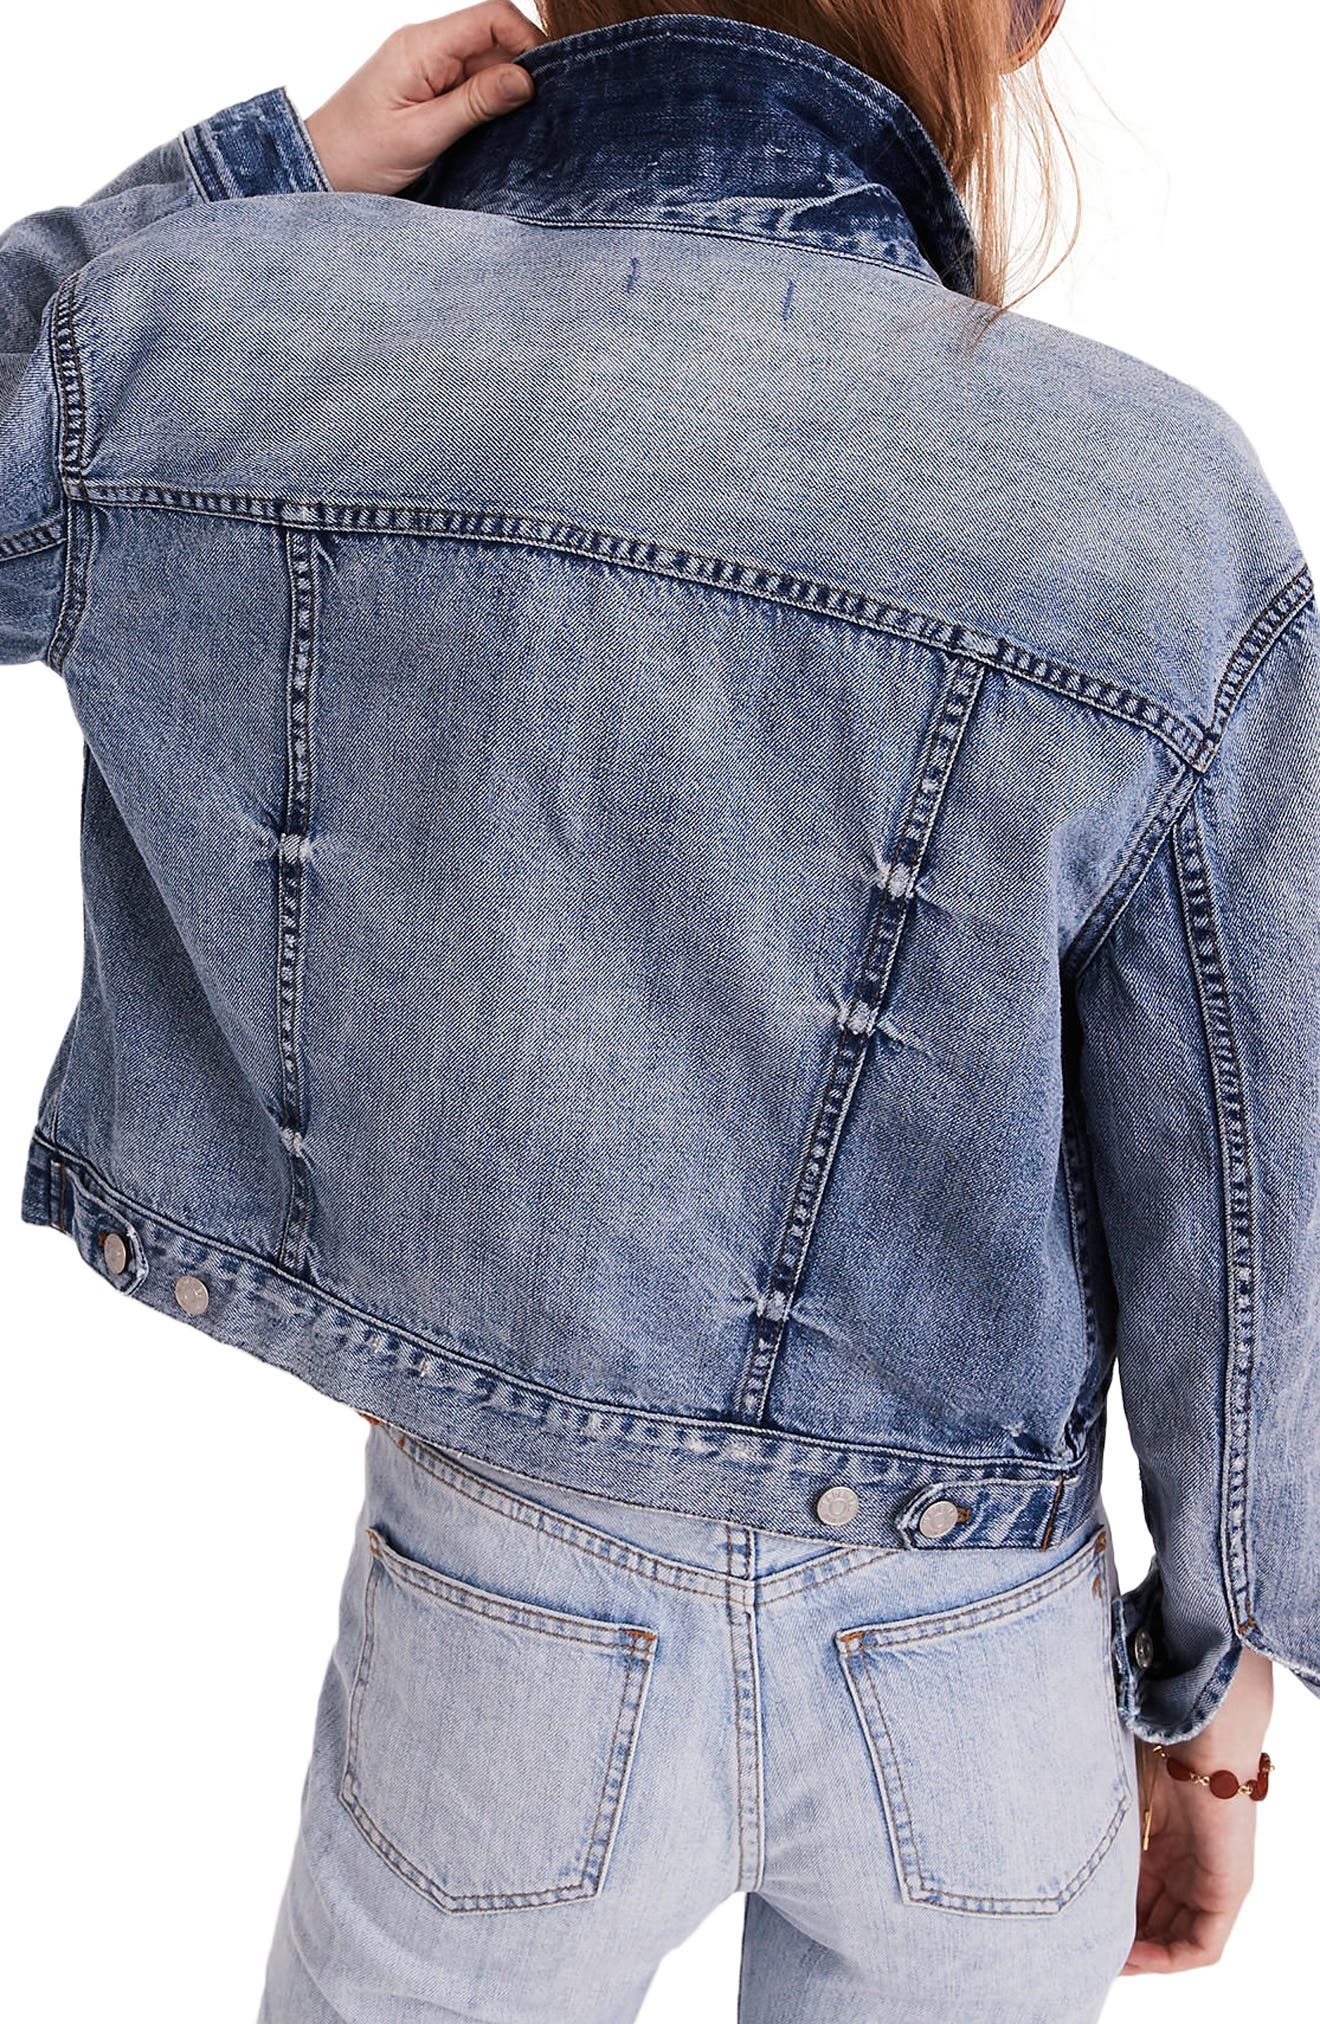 MADEWELL,                             Boxy Crop Jean Jacket,                             Alternate thumbnail 2, color,                             400